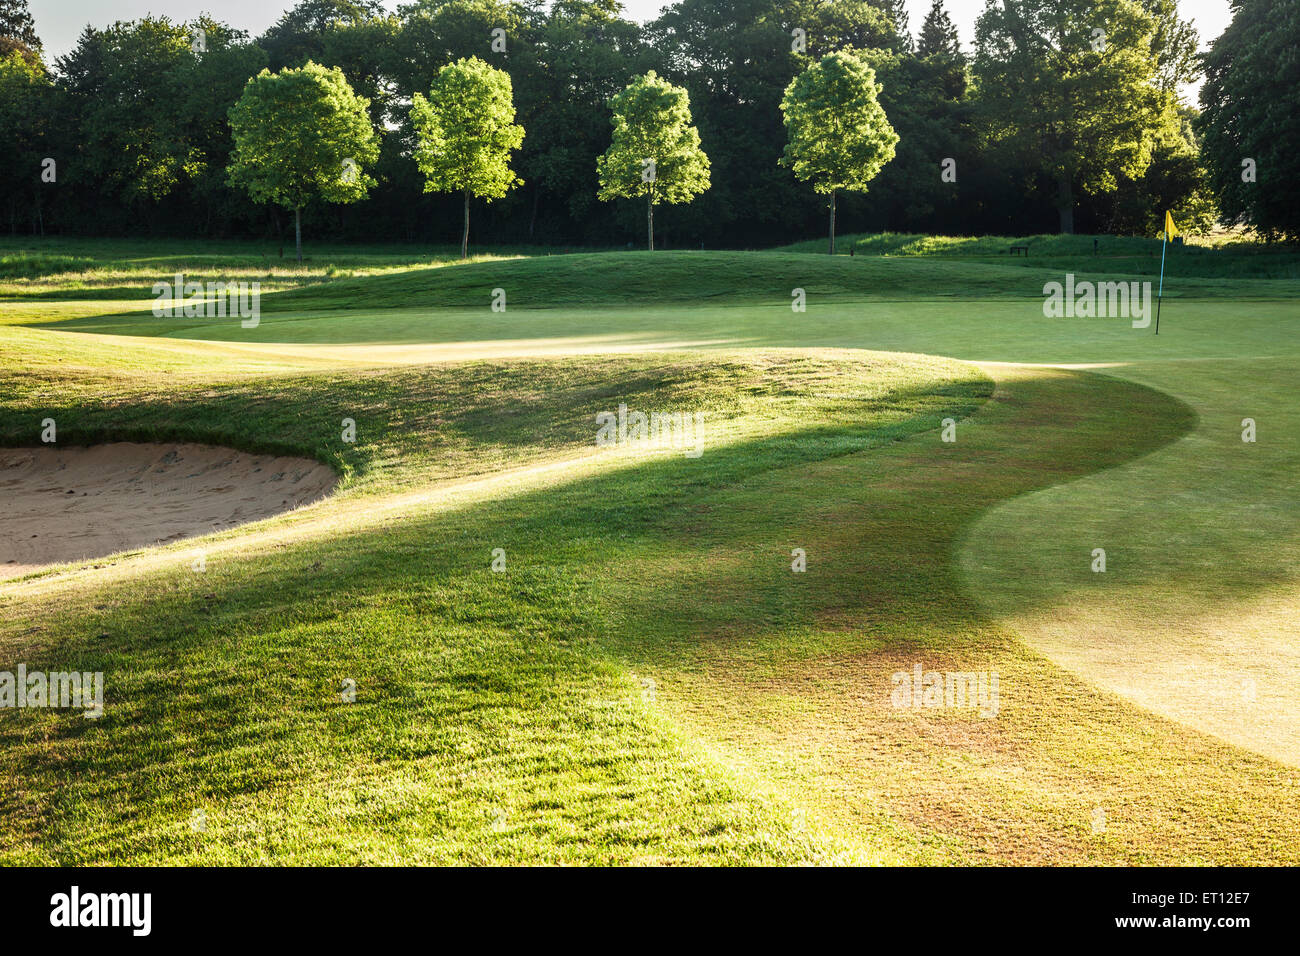 A typical golf course in early morning sunshine. - Stock Image